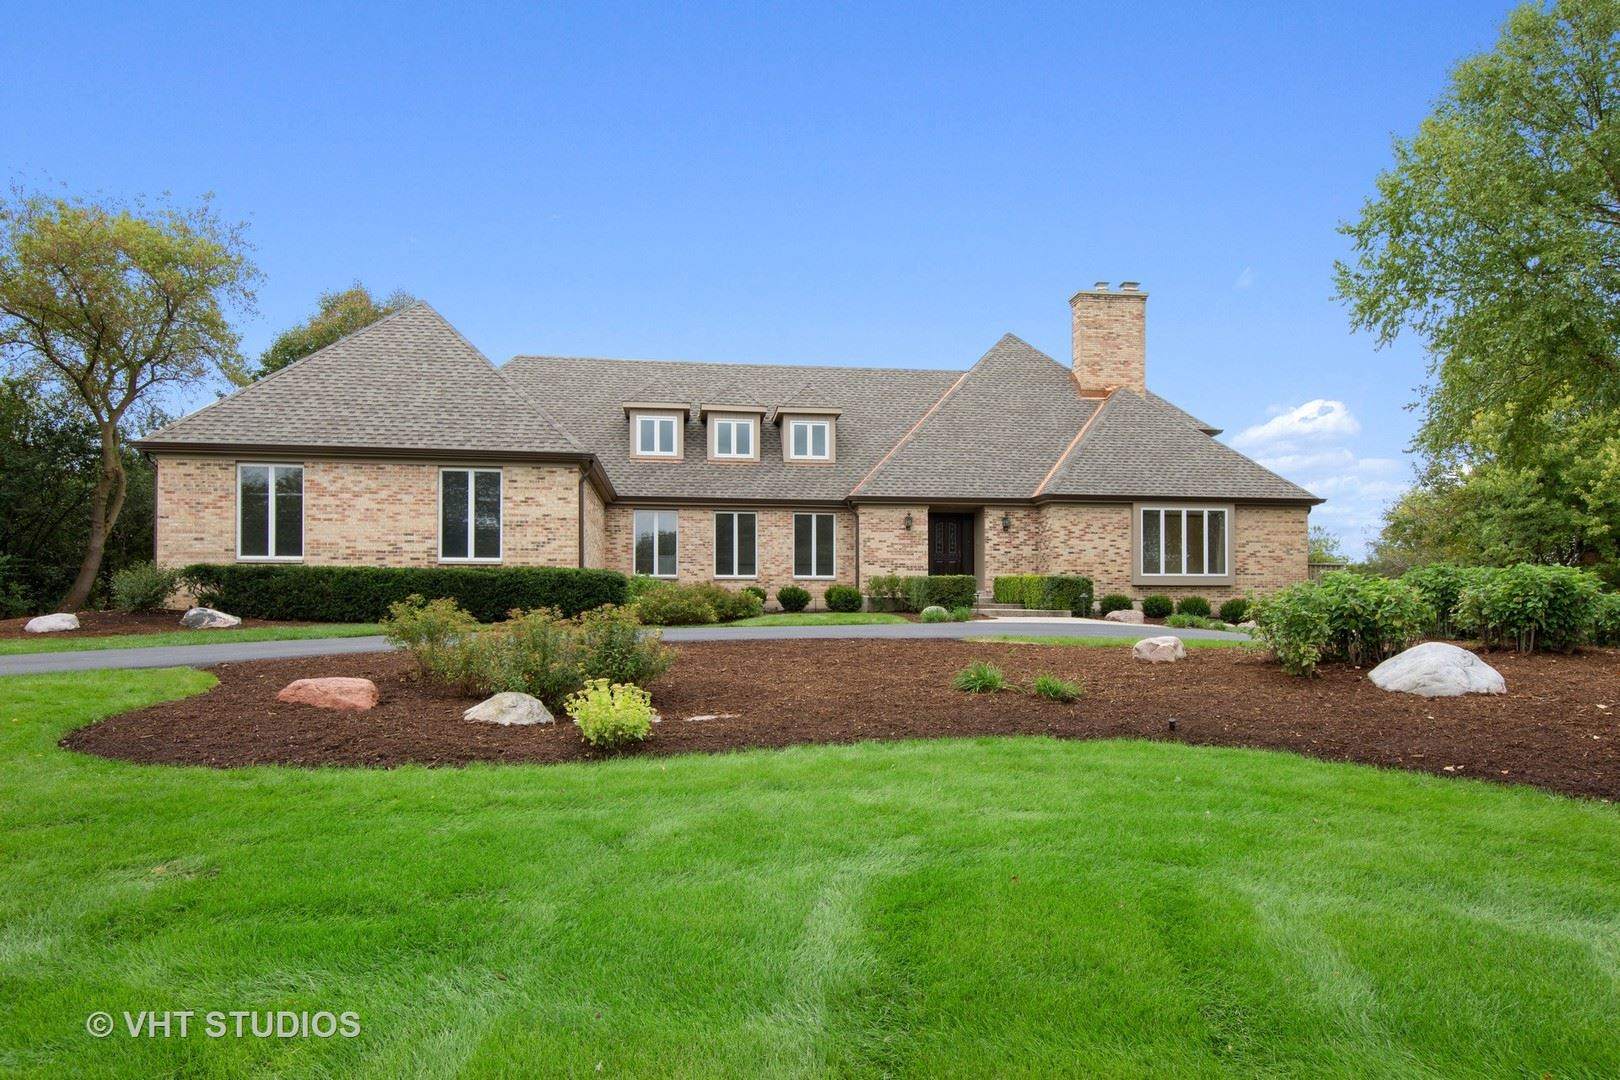 Photo for 1608 Guthrie Circle, Inverness, IL 60010 (MLS # 10702780)